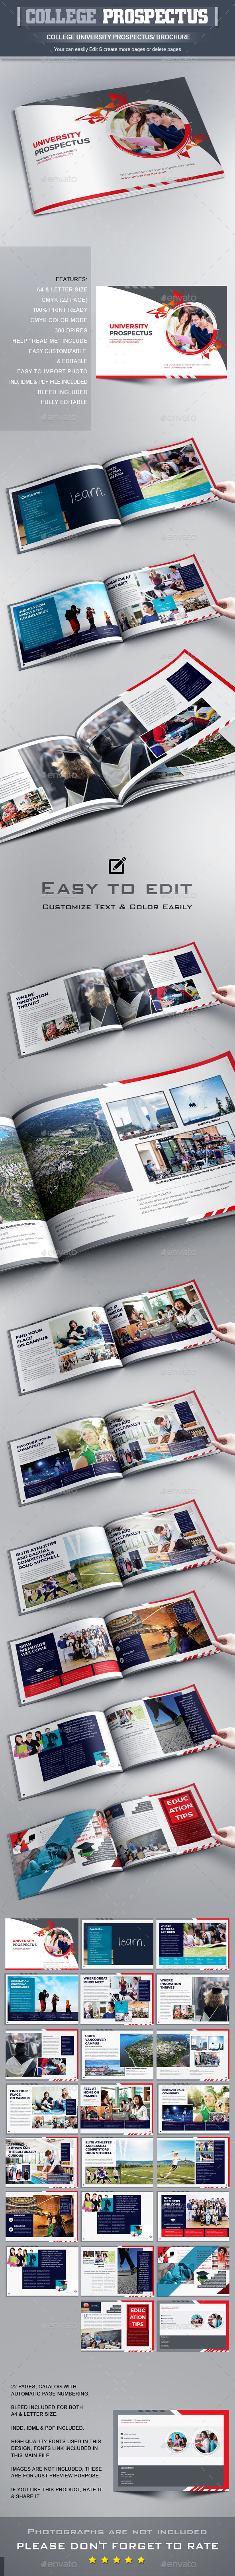 College University Prospectus Brochure Template – University Brochure Template